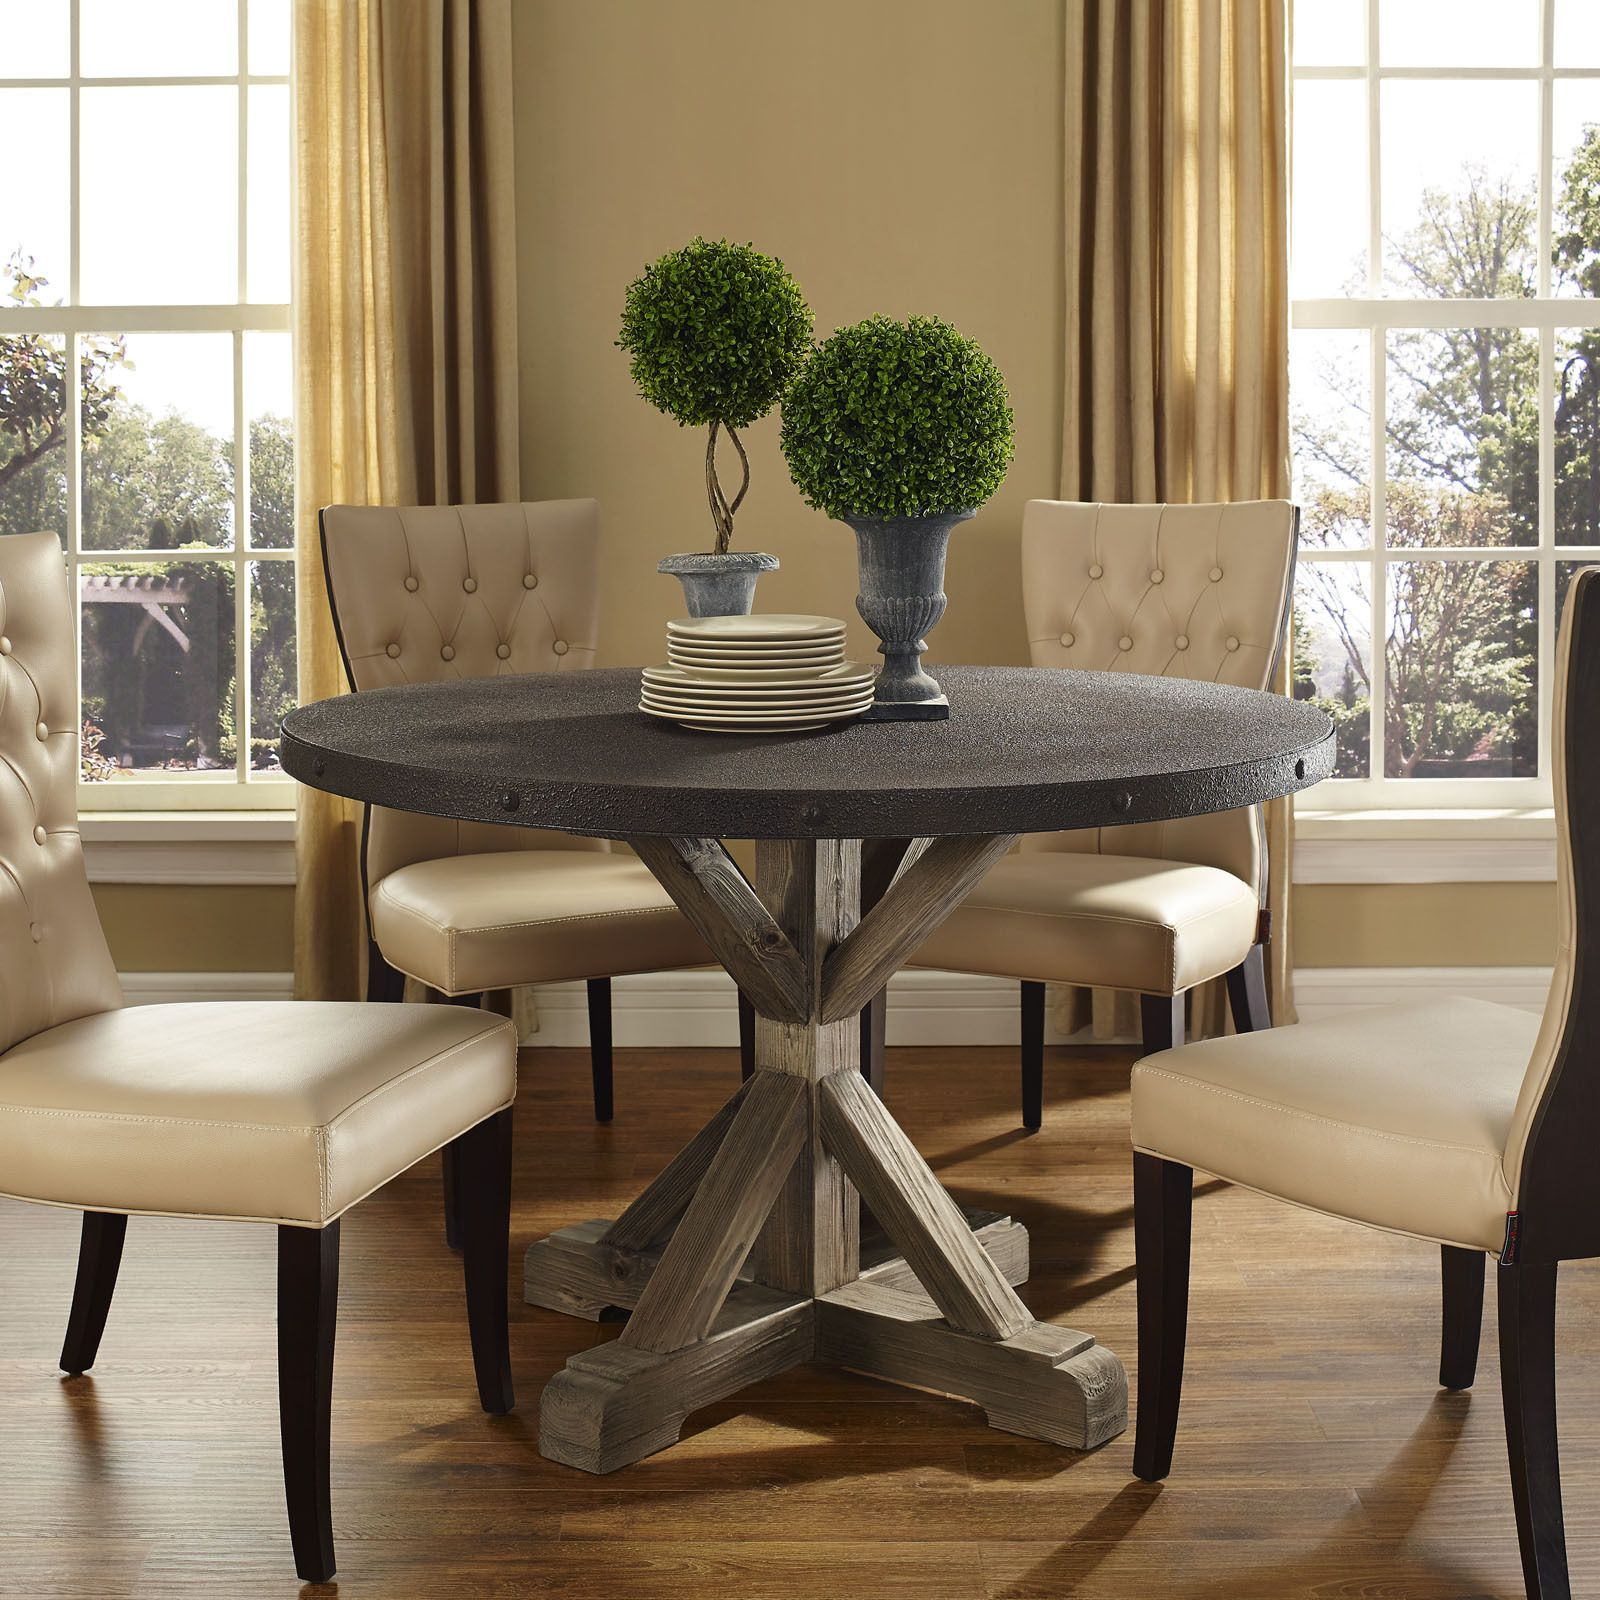 overstock dining room tables | Online Shopping - Bedding, Furniture, Electronics, Jewelry ...